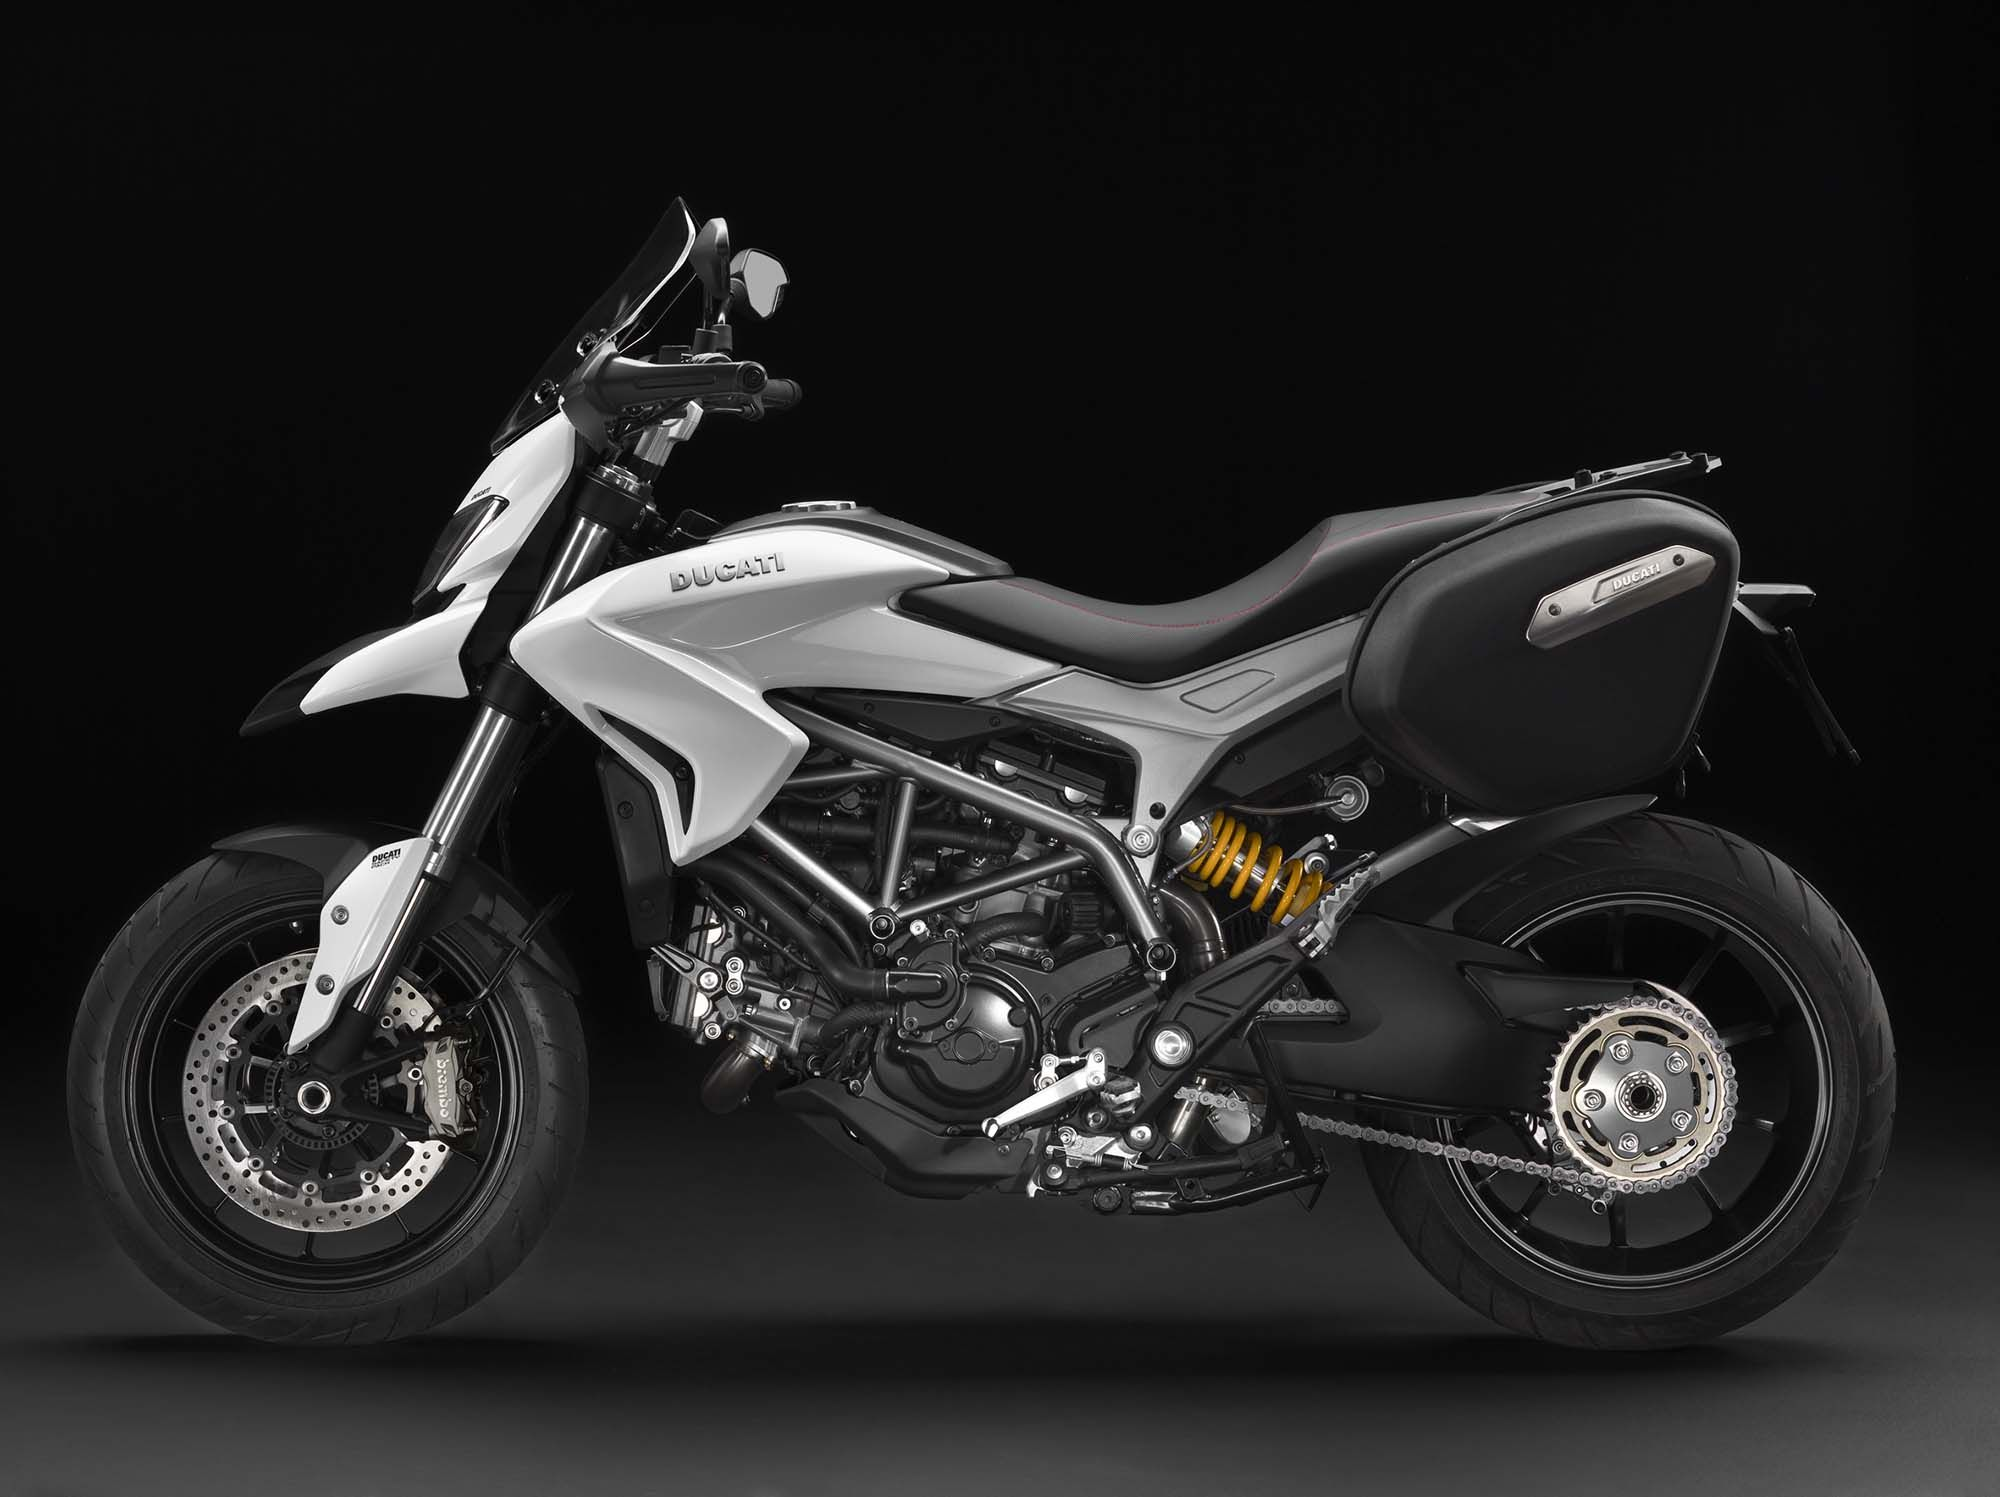 2013 Ducati Hyperstrada Car Specifications Car Wallpaper Car